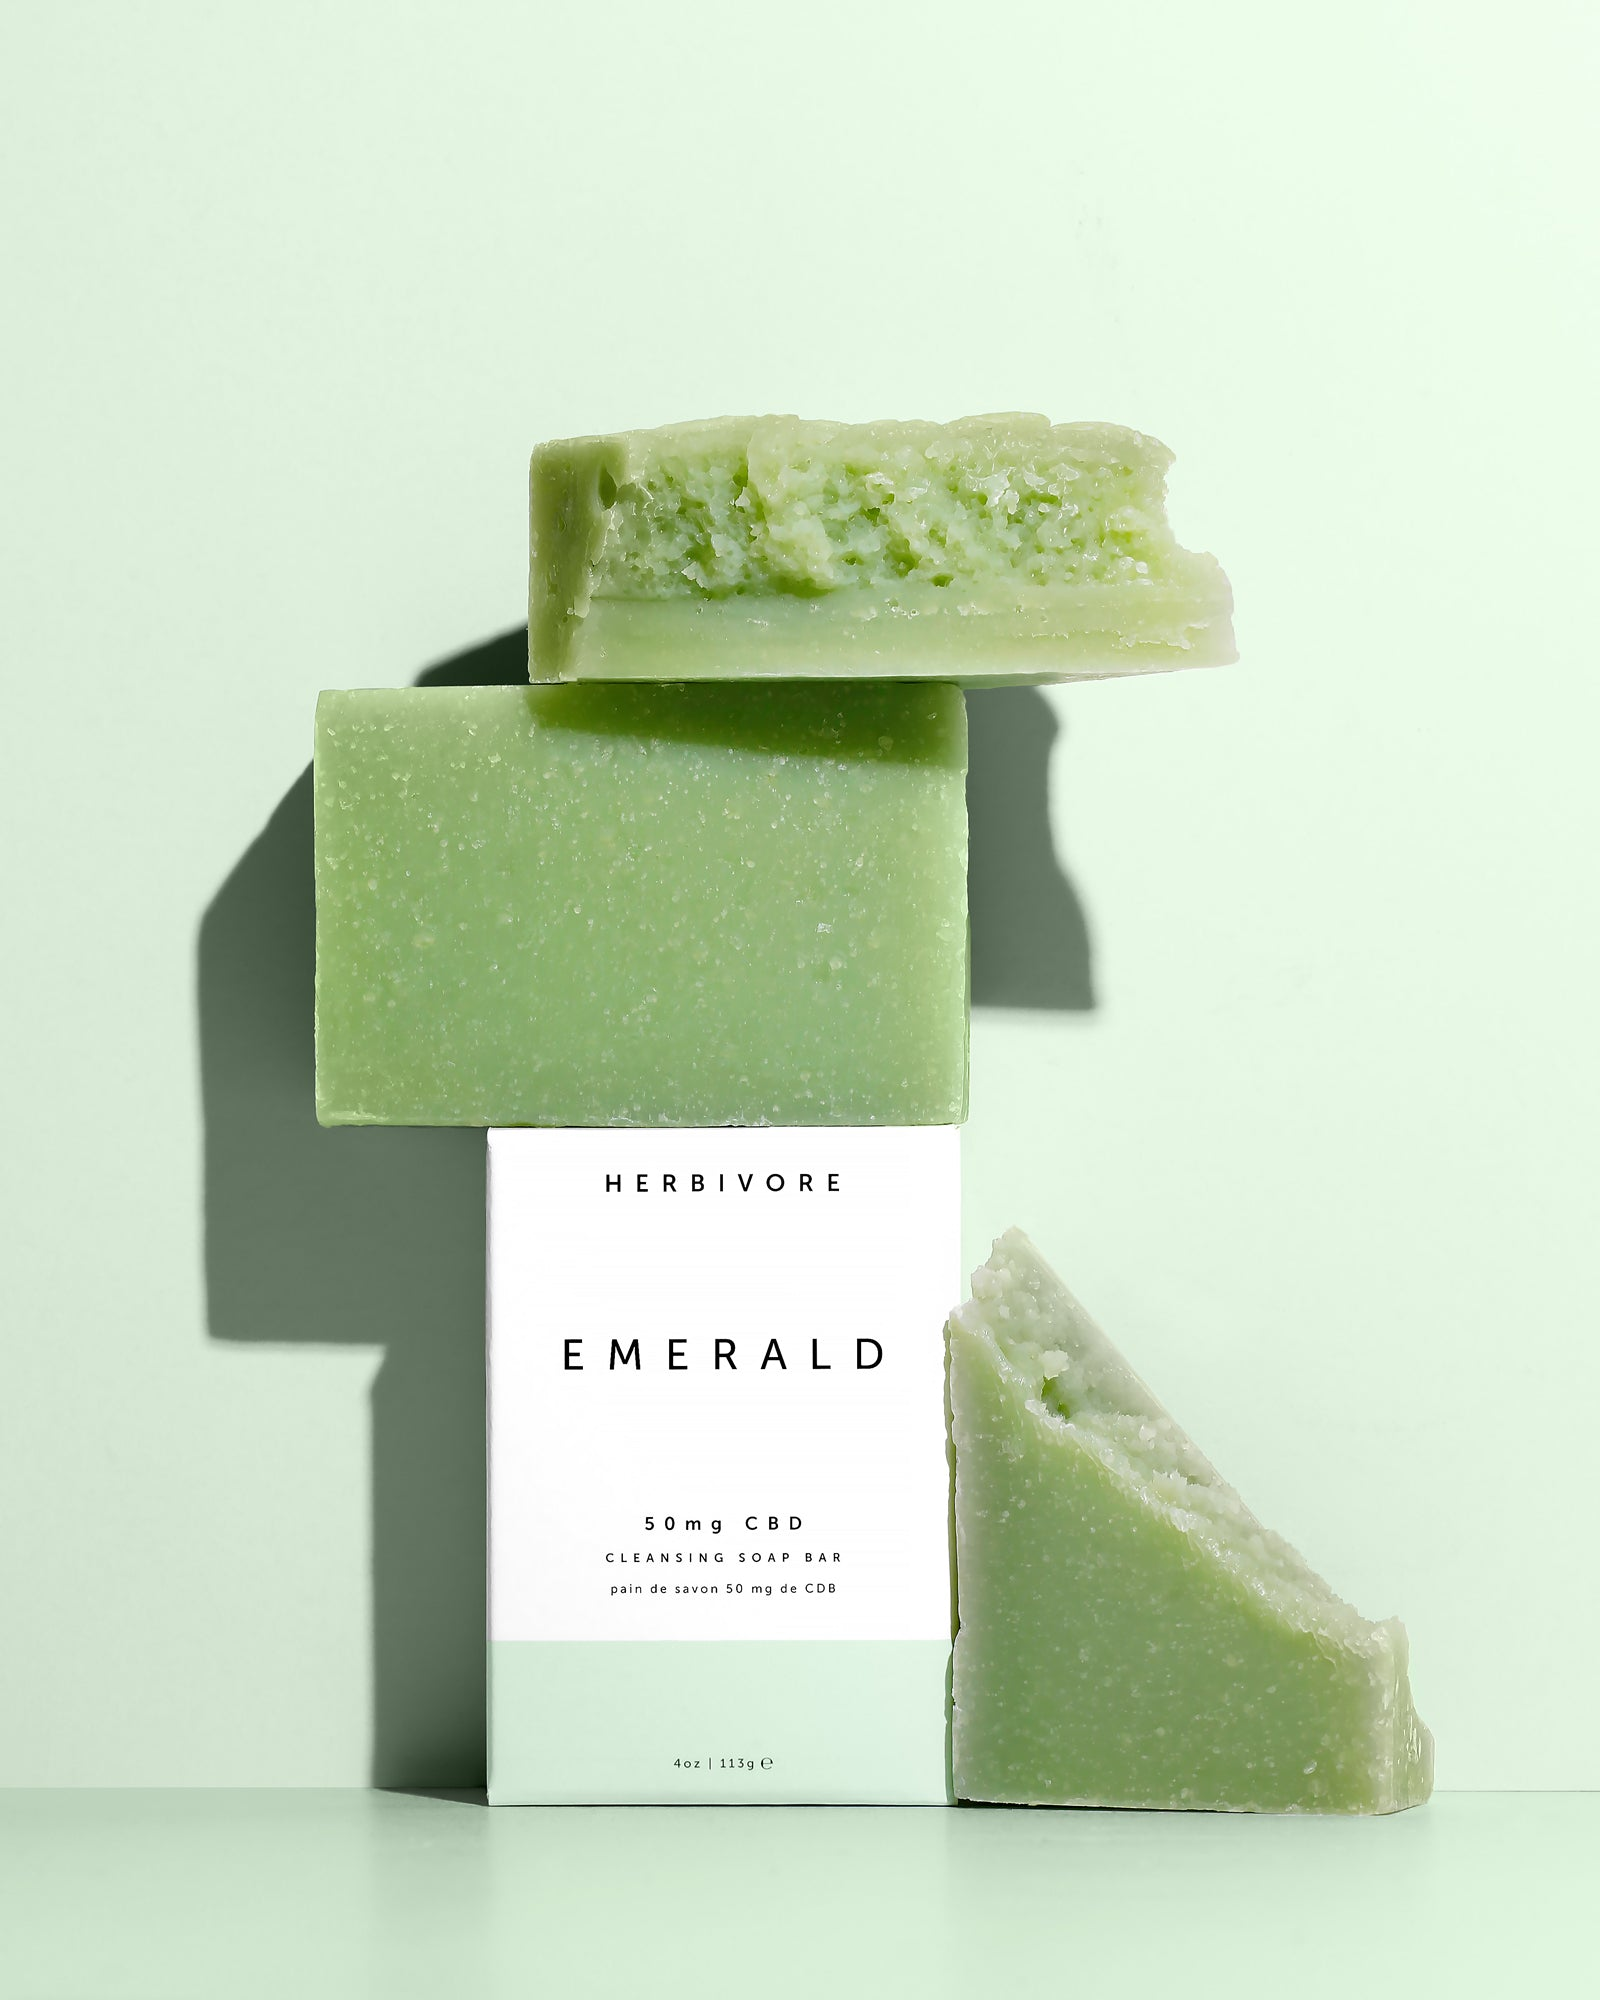 EMERALD 50mg CBD Cleansing Soap Bar